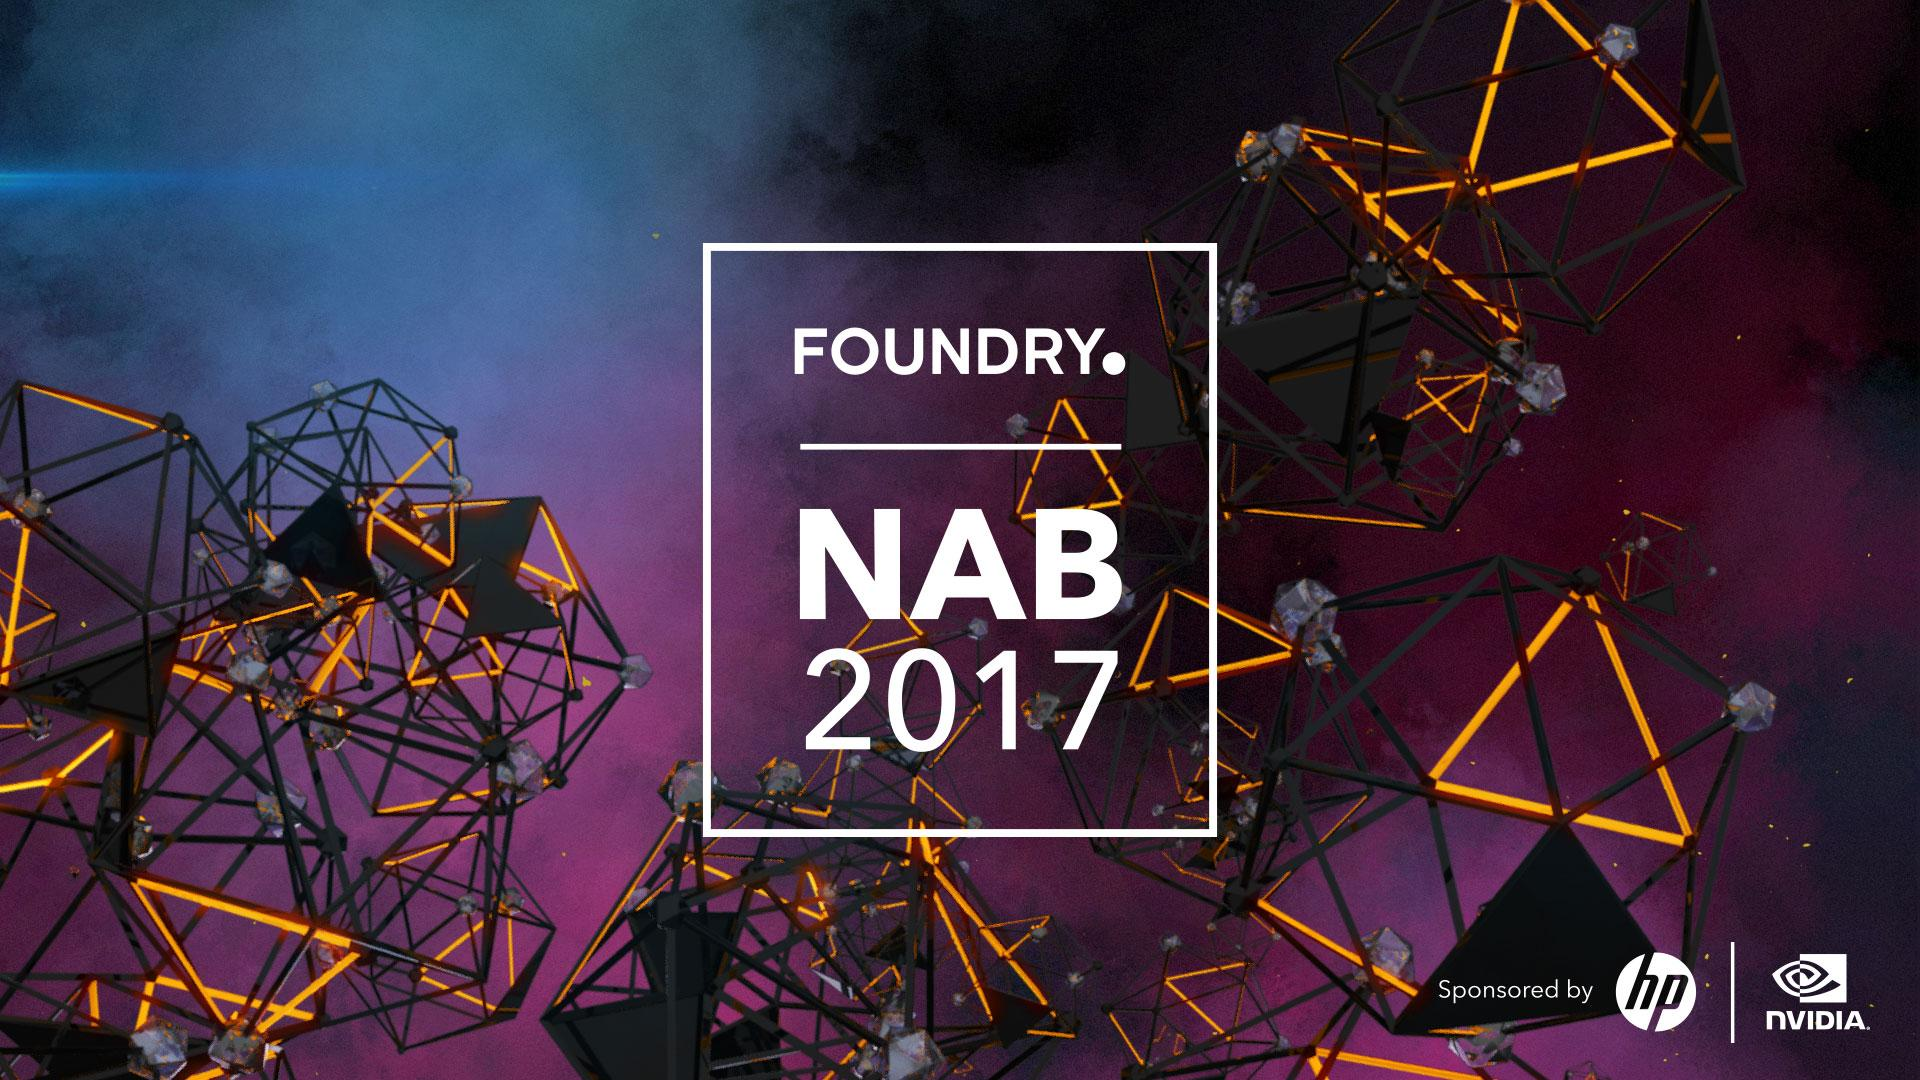 The Foundry at NAB 2017